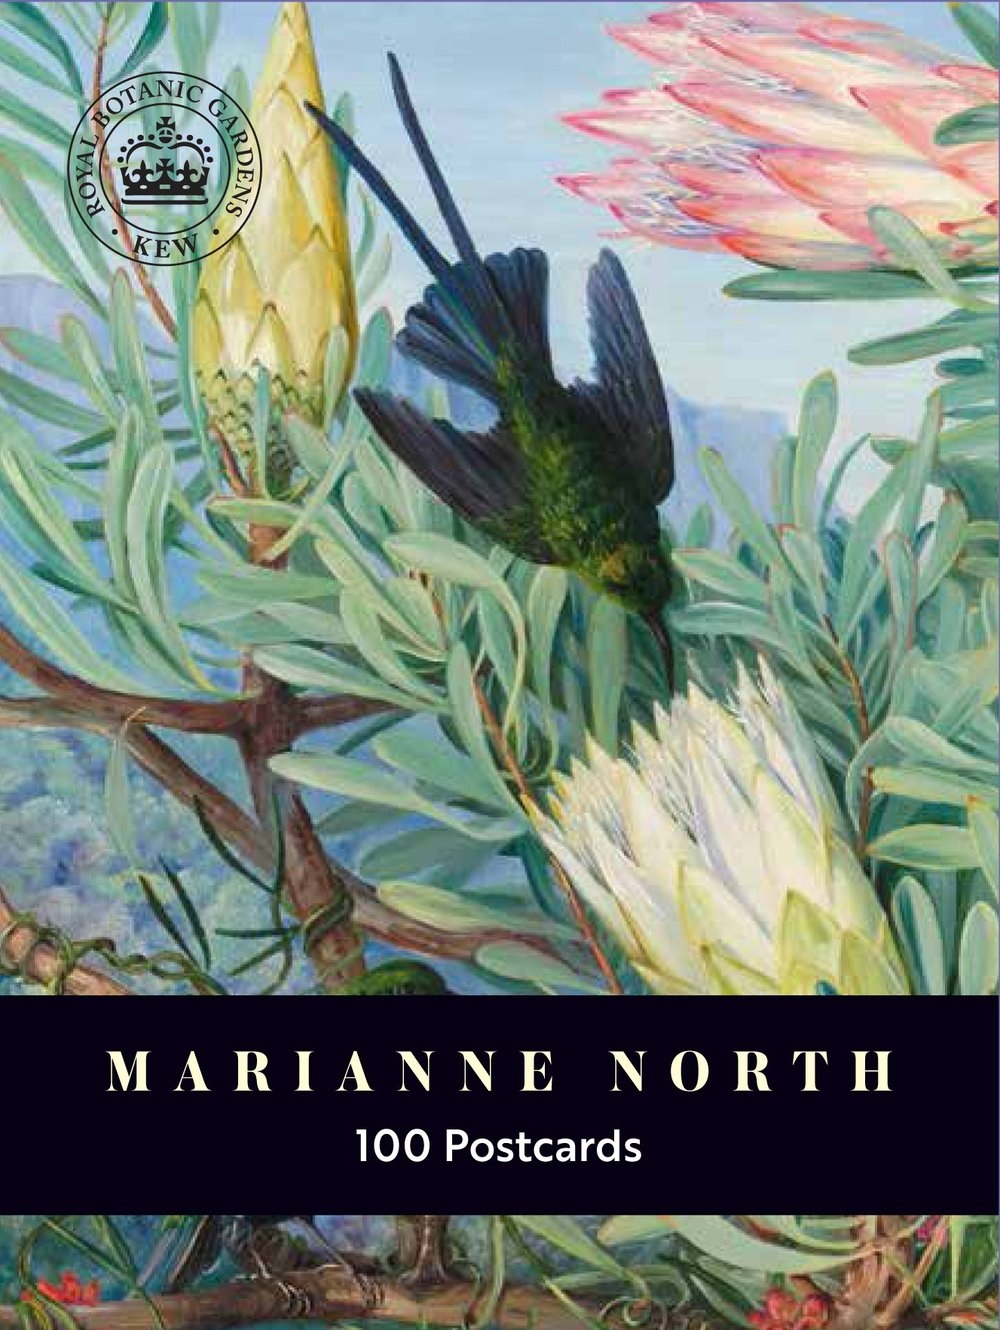 Marianne North postcards